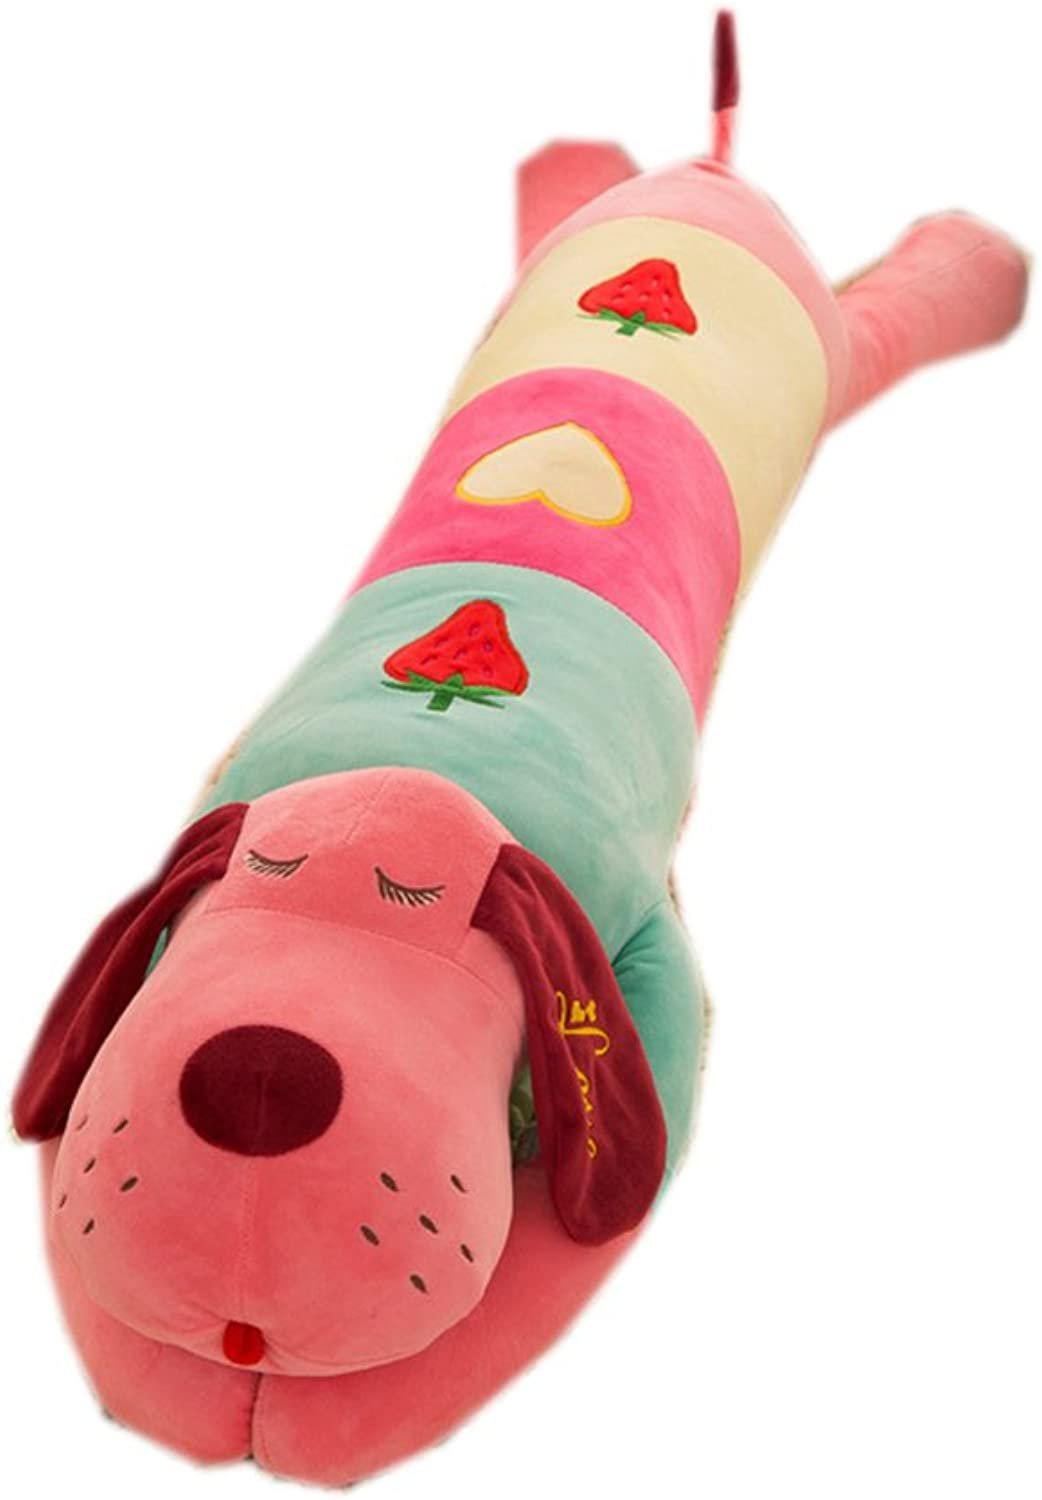 [Trendy Comfy] Fruit Lie Prone Dog Plush Toy Doll Office Nap Pillow Hold Pillow (Red) 42.9